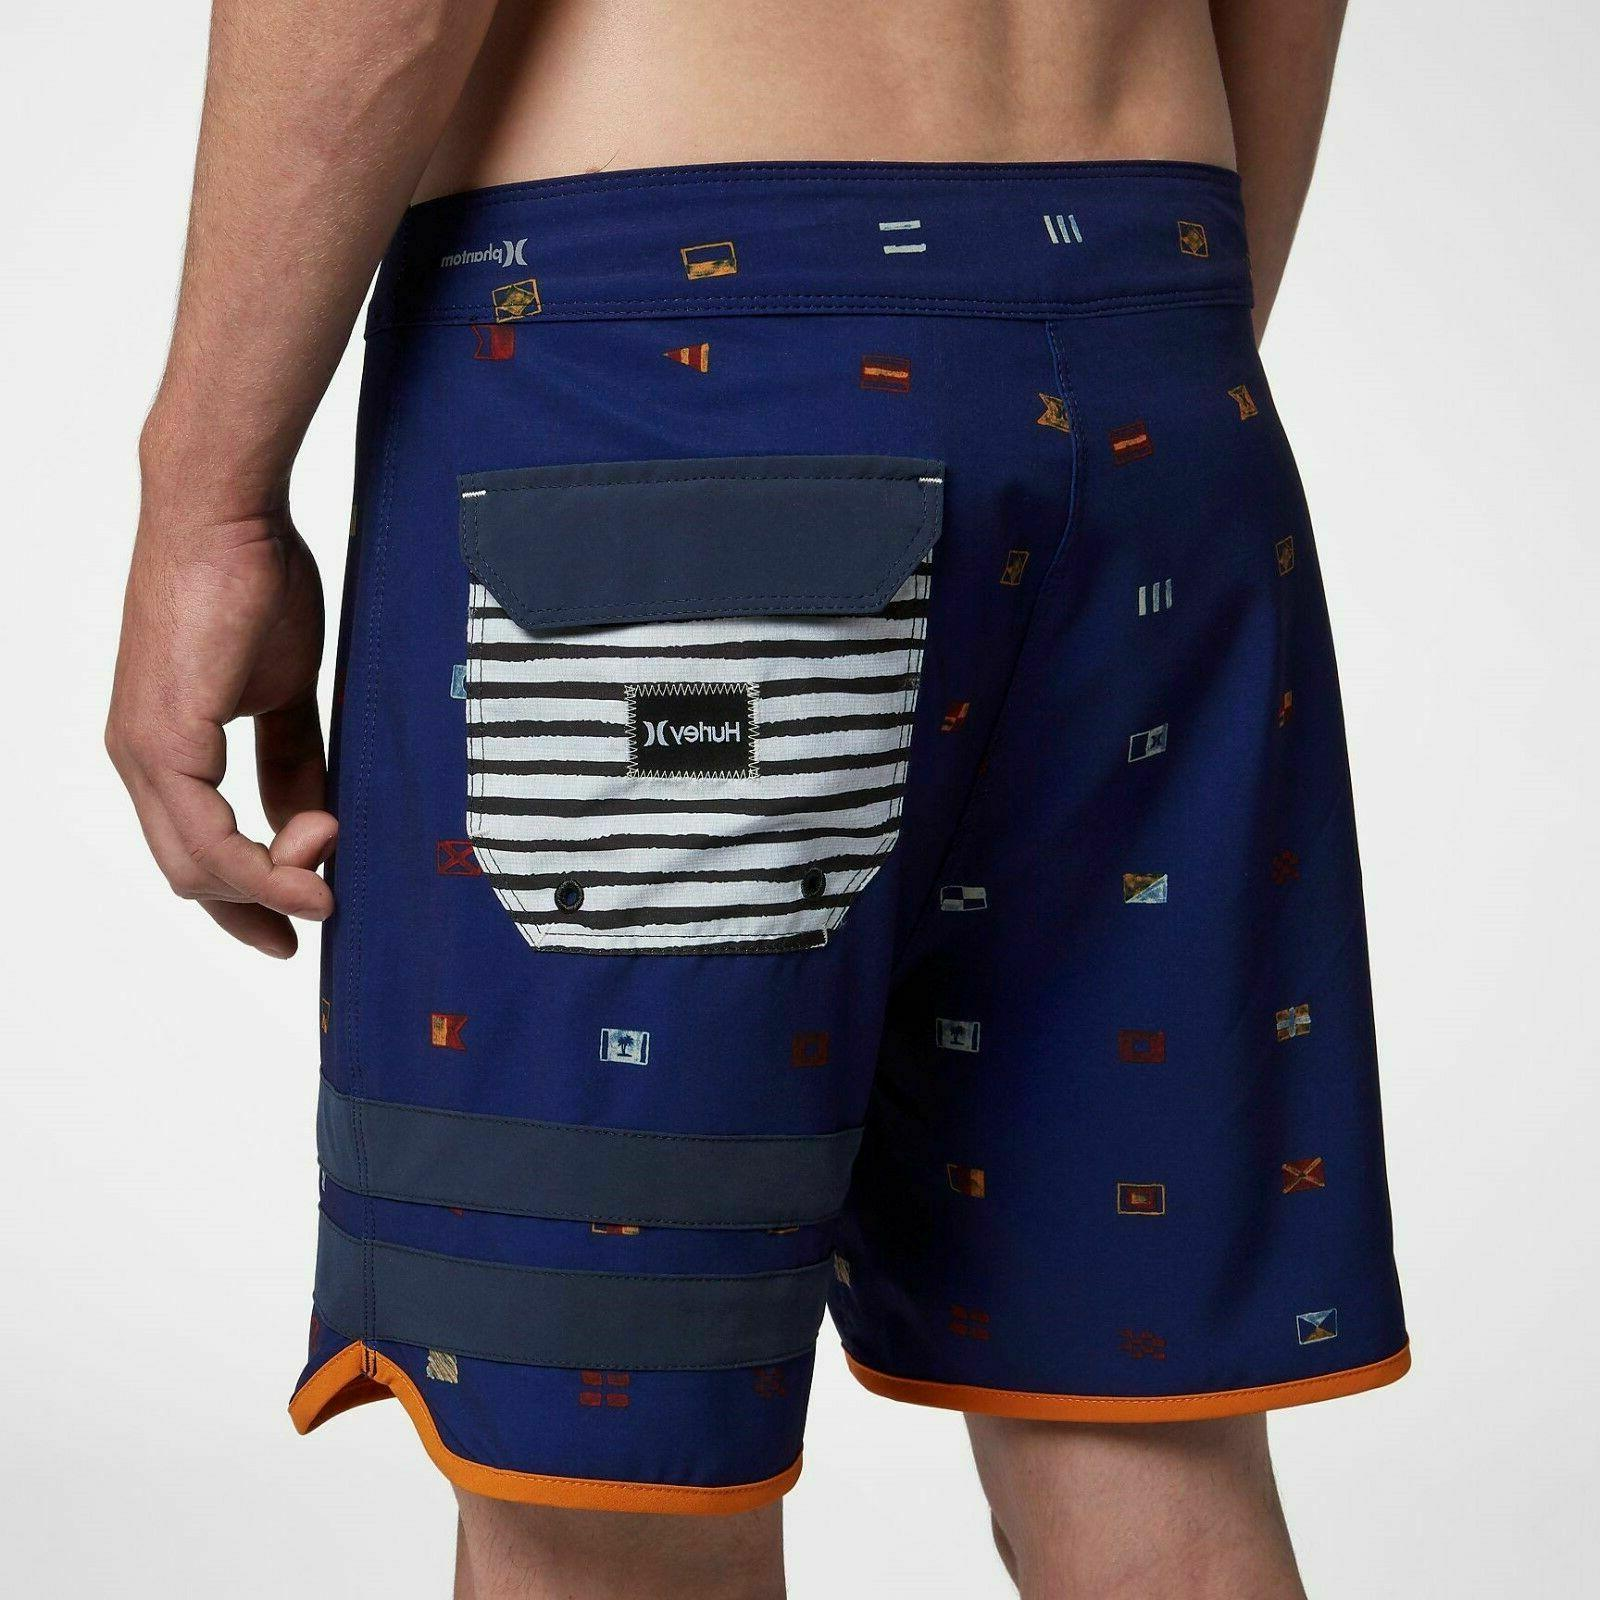 Hurley BP Seaworthy Inch Board Shorts Blue Swimwear Summer Beach